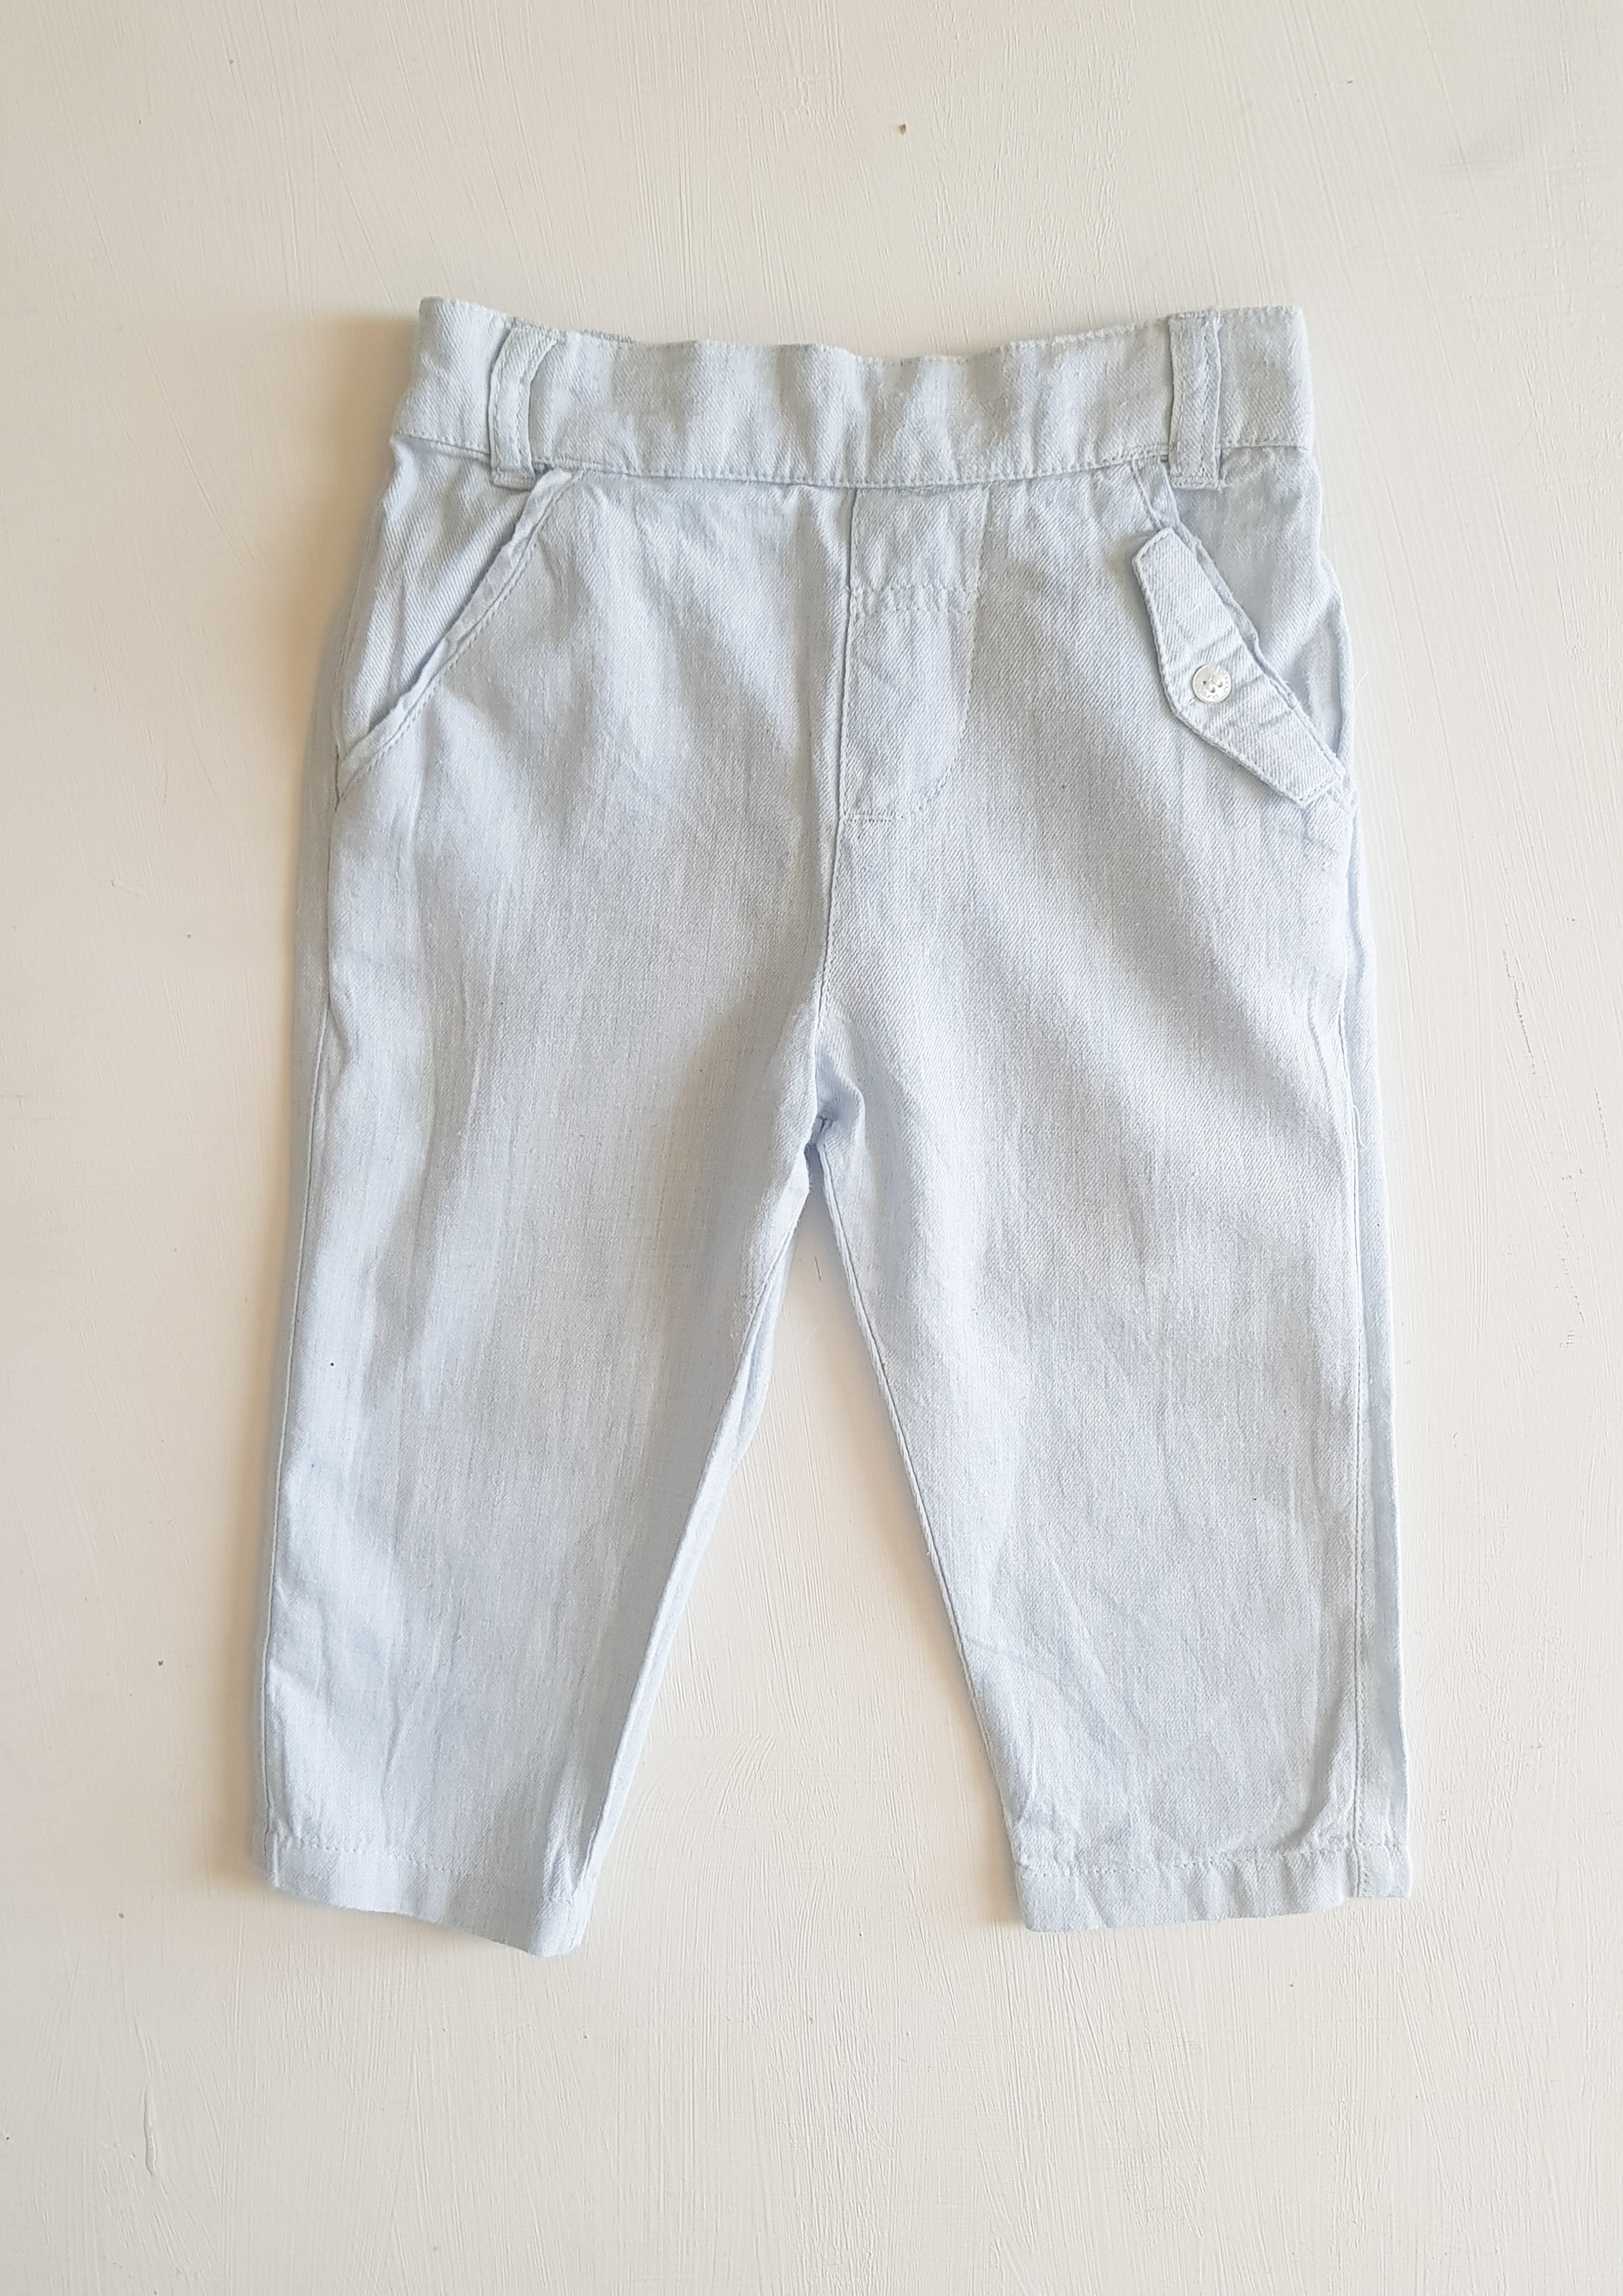 THRIFT Purebaby - Pale Blue pants Size 0